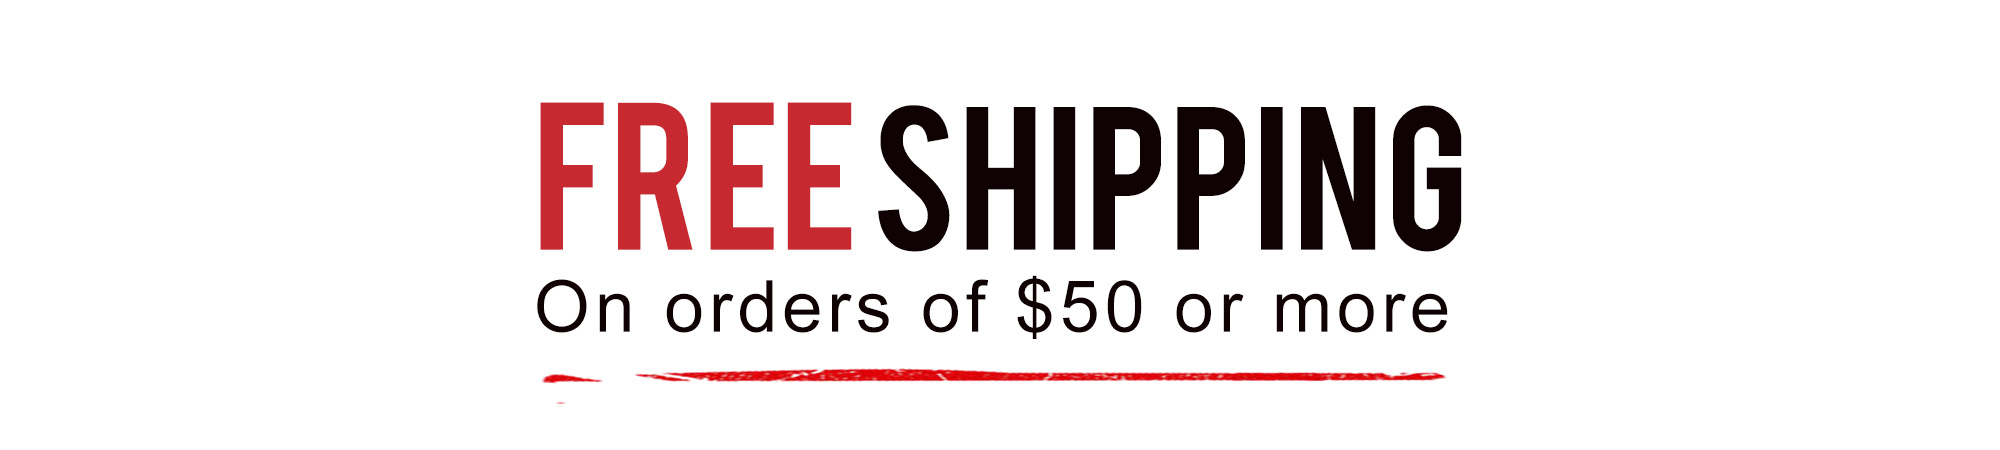 shipping-banner